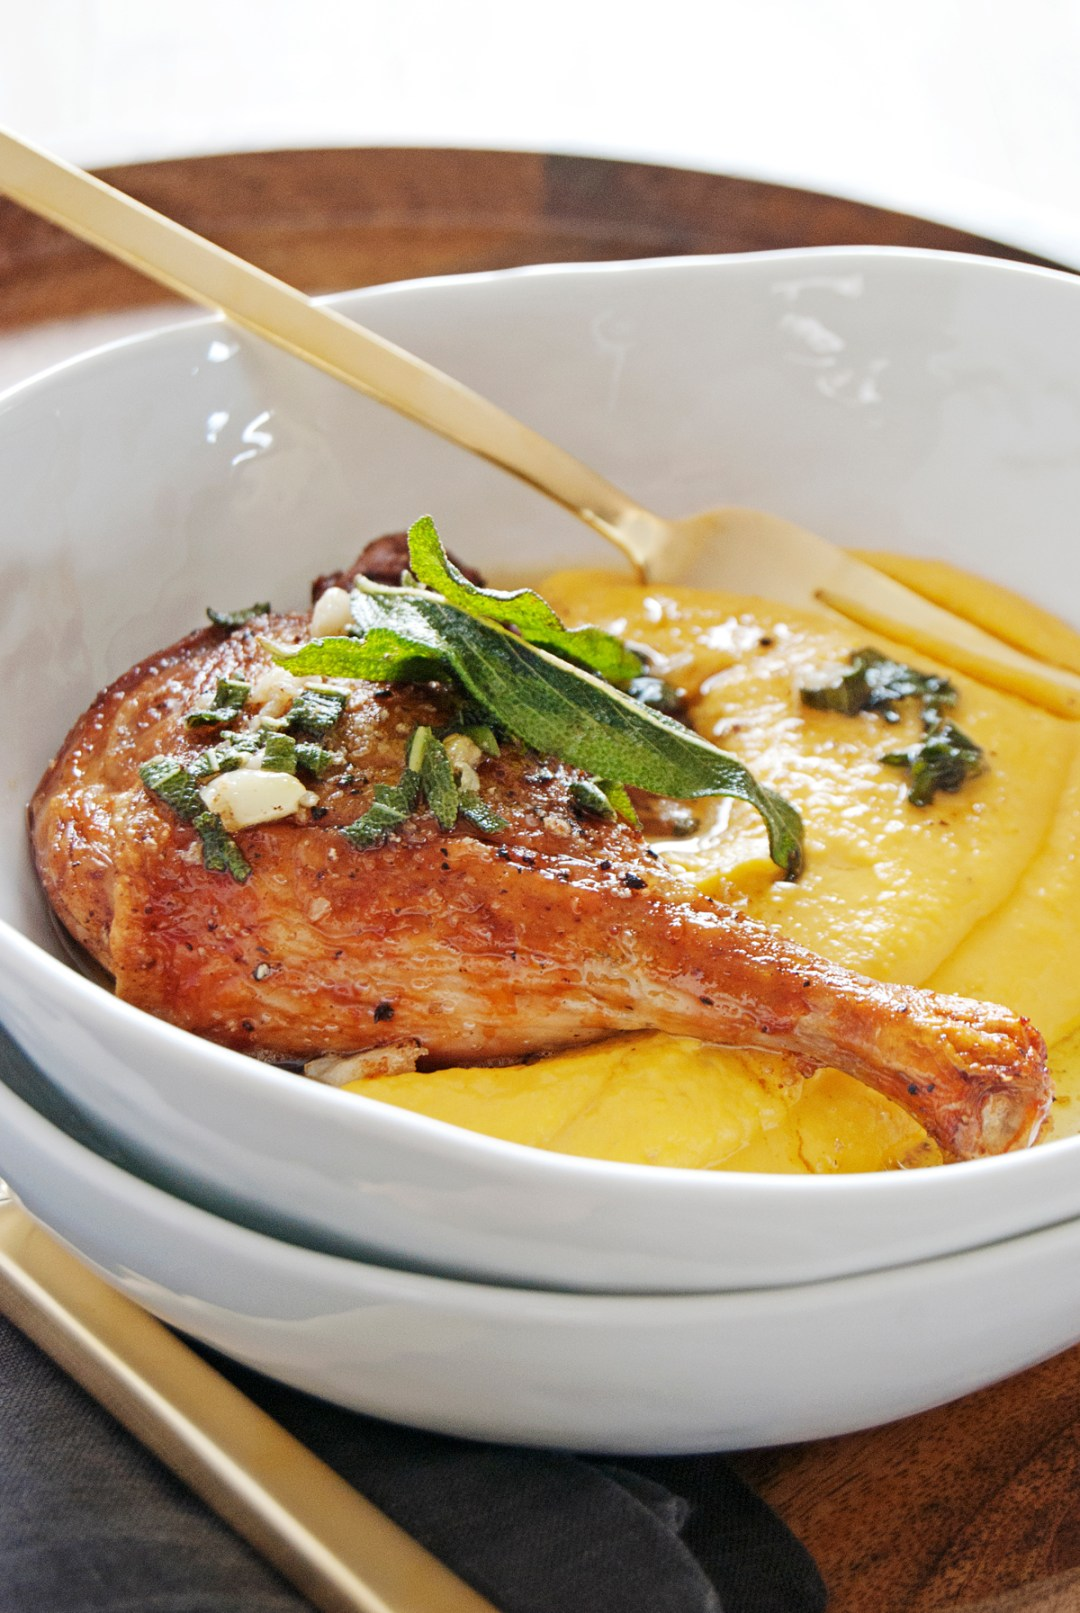 These crispy oven roasted duck legs are paired with a luscious butternut squash mascarpone puree and brown butter sage sauce.